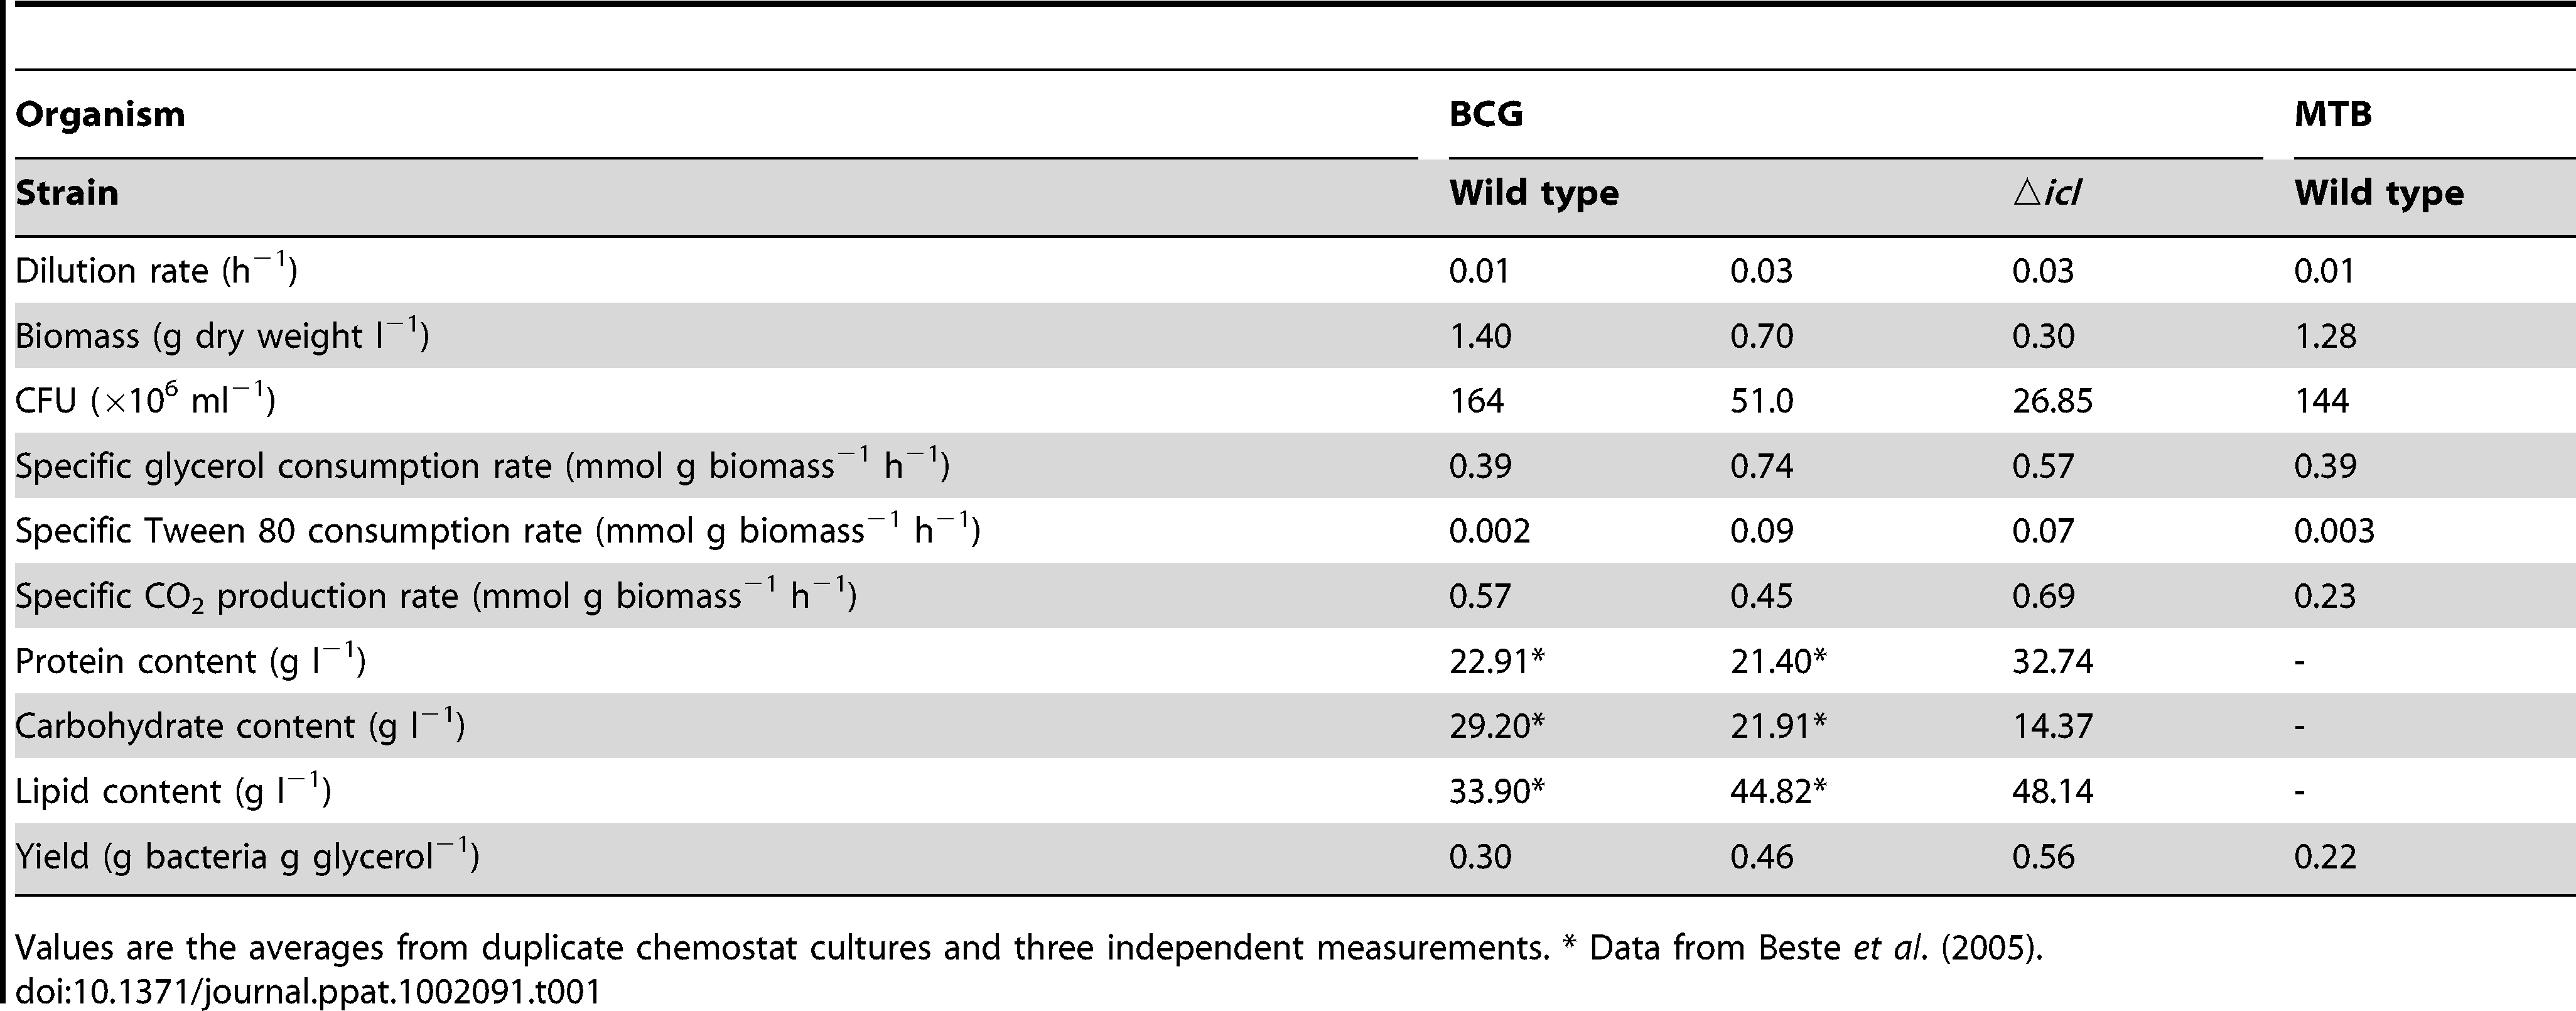 Steady state characteristics of wild type and ▵<i>icl</i> strains of <i>M.bovis</i> BCG (BCG) and wild type <i>M. tuberculosis</i> (MTB) grown in a glycerol-limited chemostat.